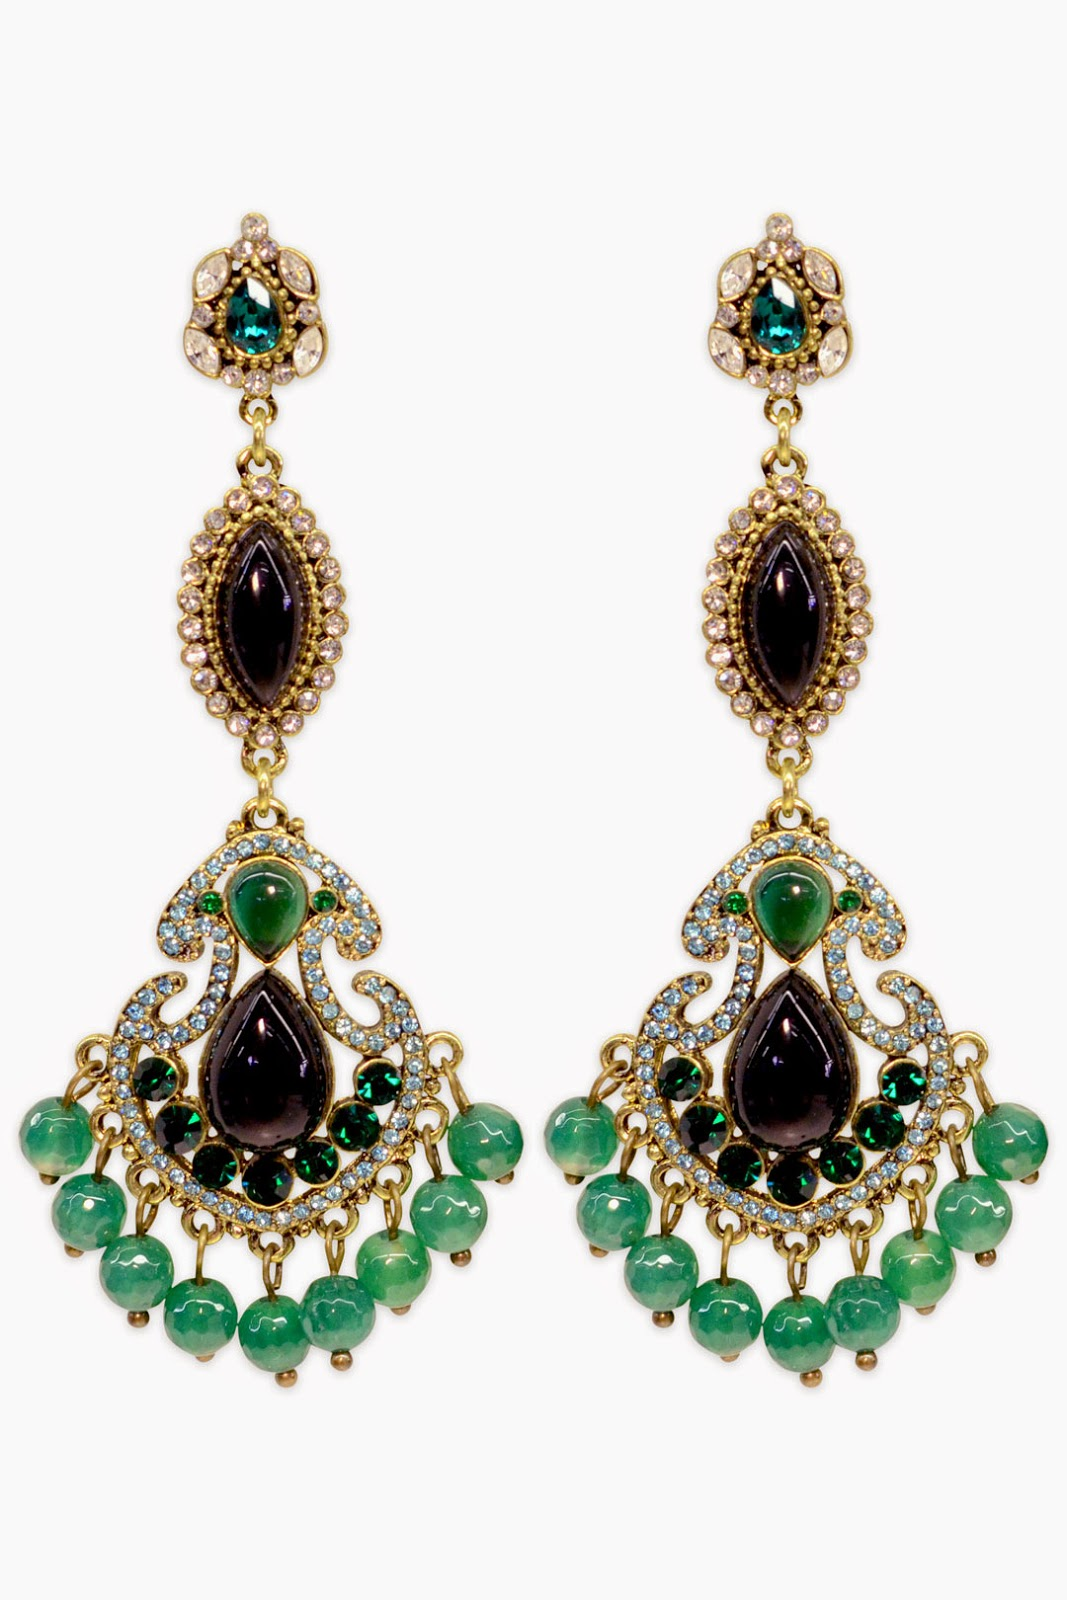 badgley mischka entrancing emerald earrings